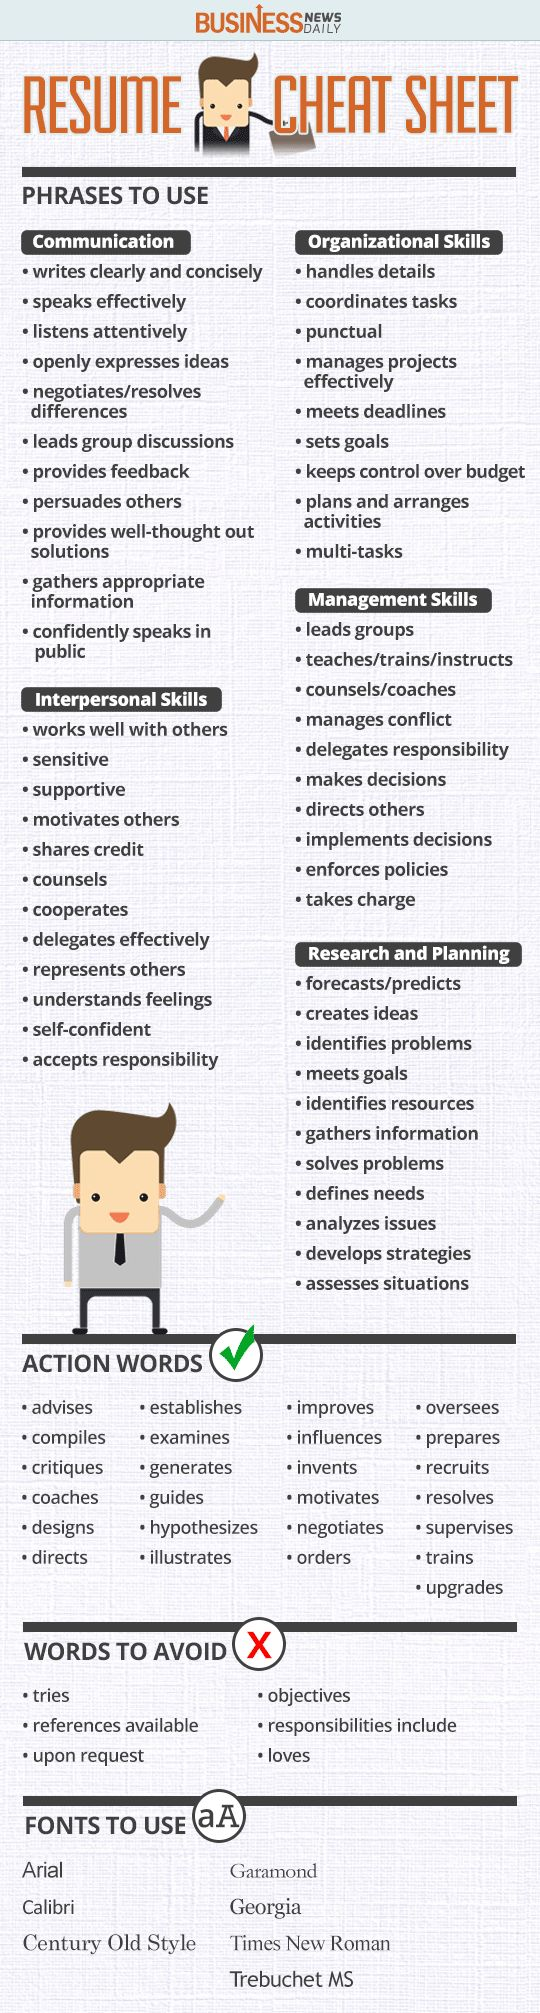 Opposenewapstandardsus  Outstanding  Ideas About Resume On Pinterest  Cv Format Resume Cv And  With Remarkable Resume Cheat Sheet Infographic Andrews Almost Done With A Complete Unit On Employment Which With Attractive Teacher Resume Tips Also Undergraduate Student Resume In Addition How To Submit A Resume And Resume Electrical Engineer As Well As Cover Letters For Resumes Samples Additionally Resume Example Pdf From Pinterestcom With Opposenewapstandardsus  Remarkable  Ideas About Resume On Pinterest  Cv Format Resume Cv And  With Attractive Resume Cheat Sheet Infographic Andrews Almost Done With A Complete Unit On Employment Which And Outstanding Teacher Resume Tips Also Undergraduate Student Resume In Addition How To Submit A Resume From Pinterestcom